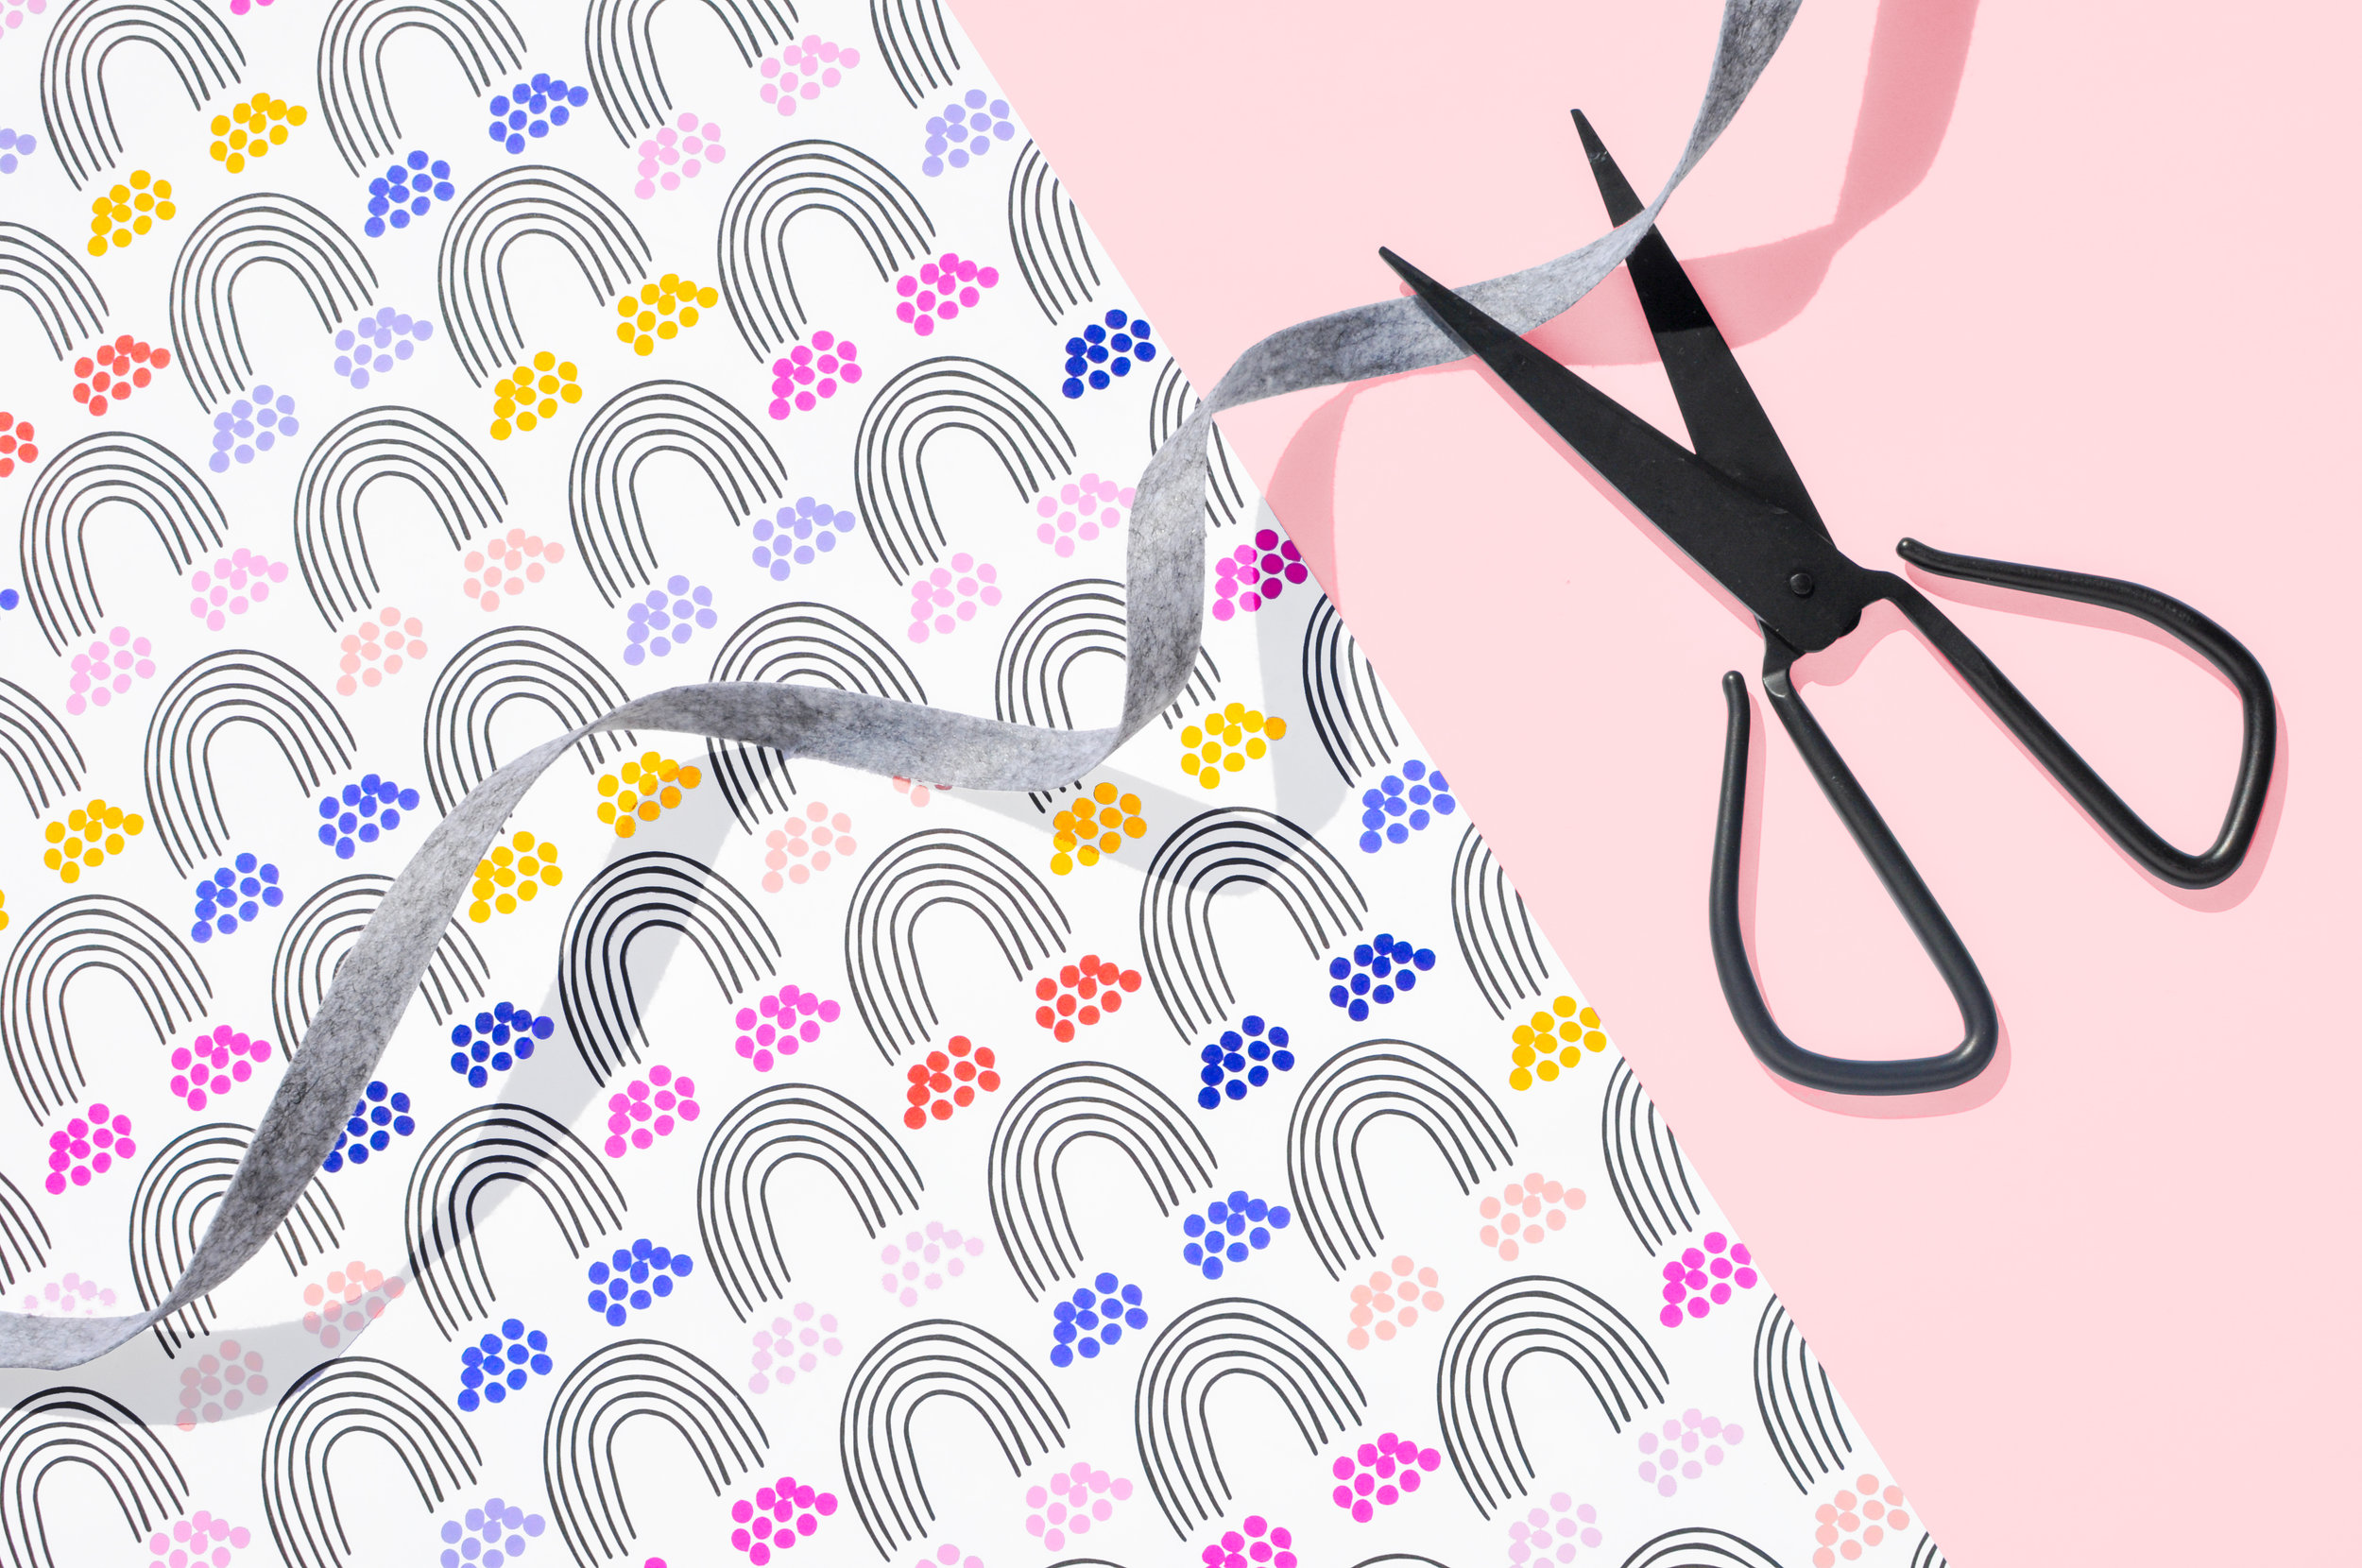 Rainbow Wrapping Paper Product Shot Flat with Scissors.jpg